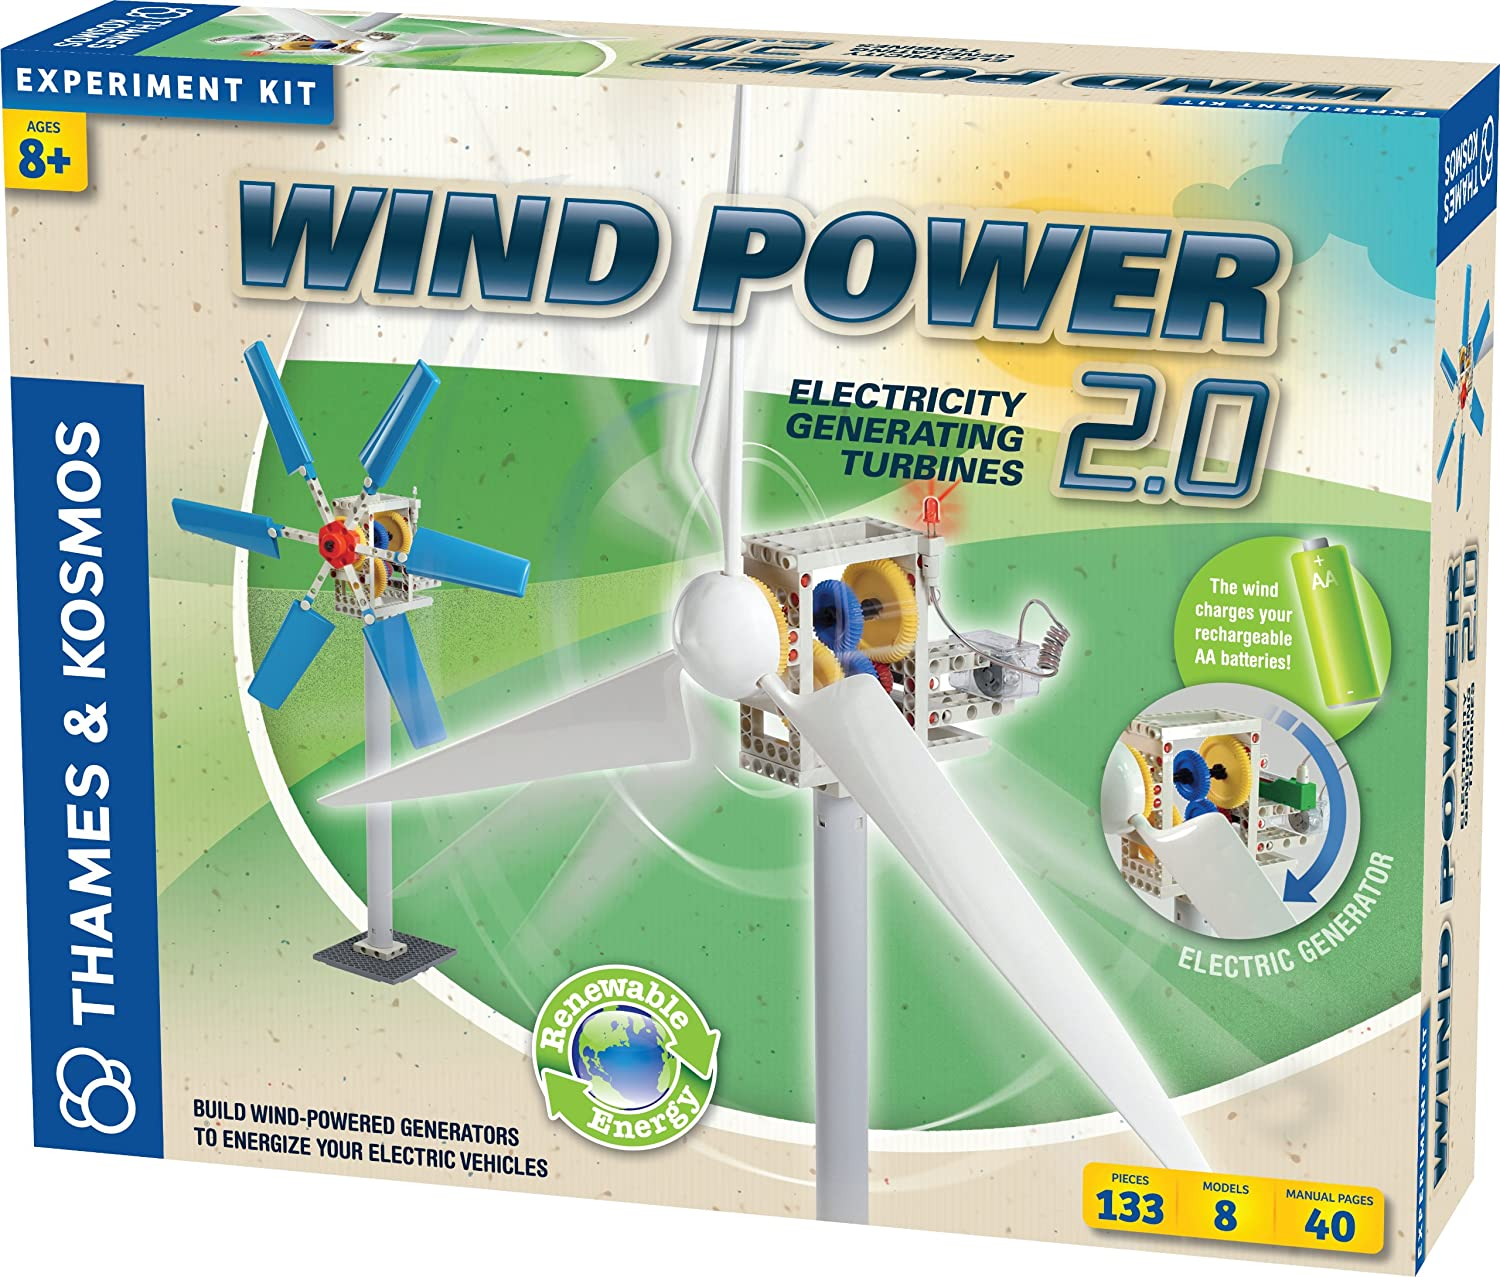 Thames & Kosmos Wind Power 2.0